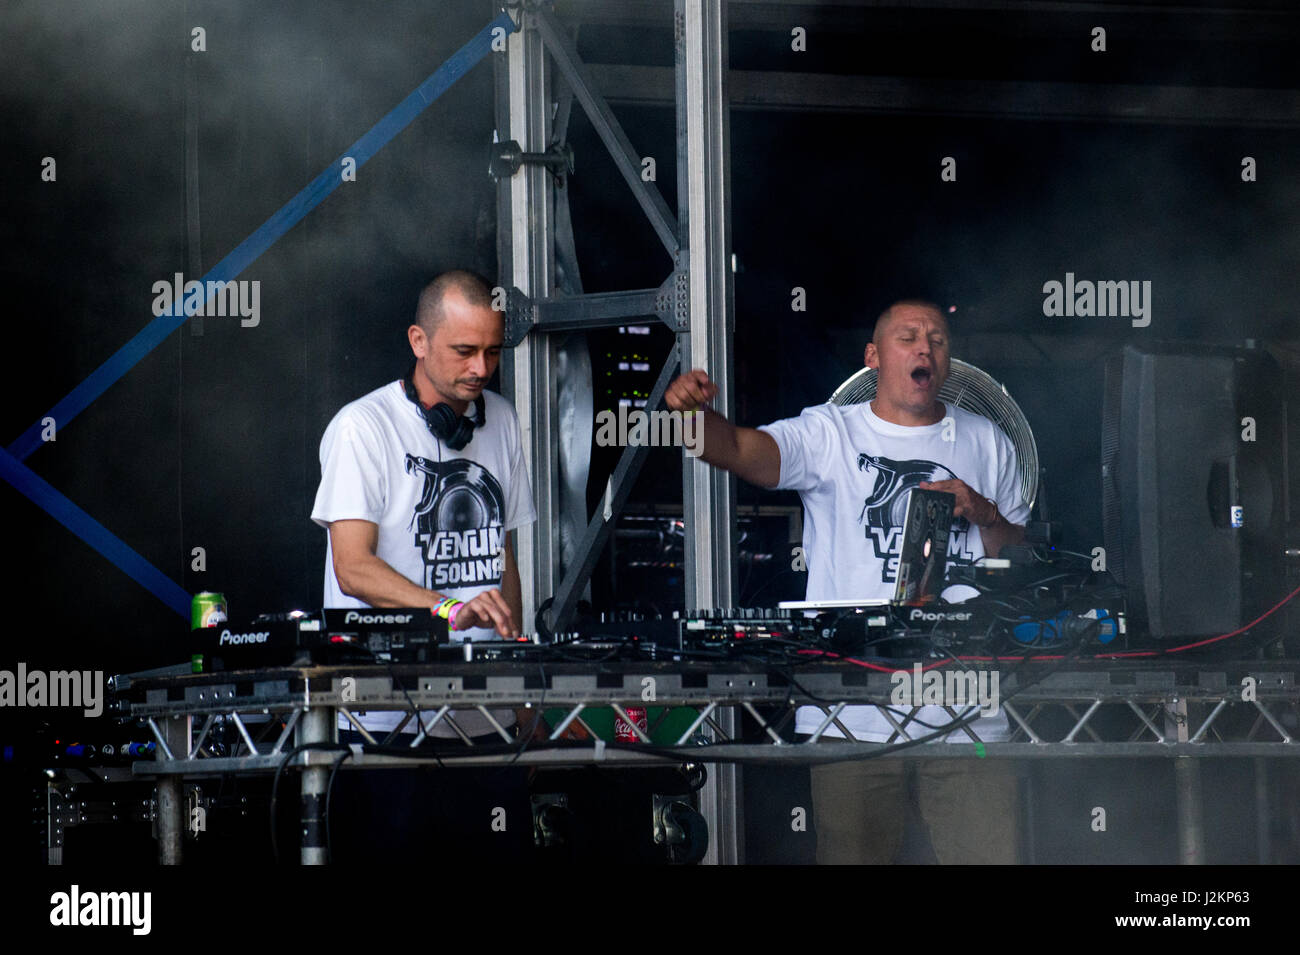 Robin Hill Country Park, Isle of Wight, United Kingdom. 9 September 2016. Venum Sound Snake at Bestival Music Festival - Stock Image